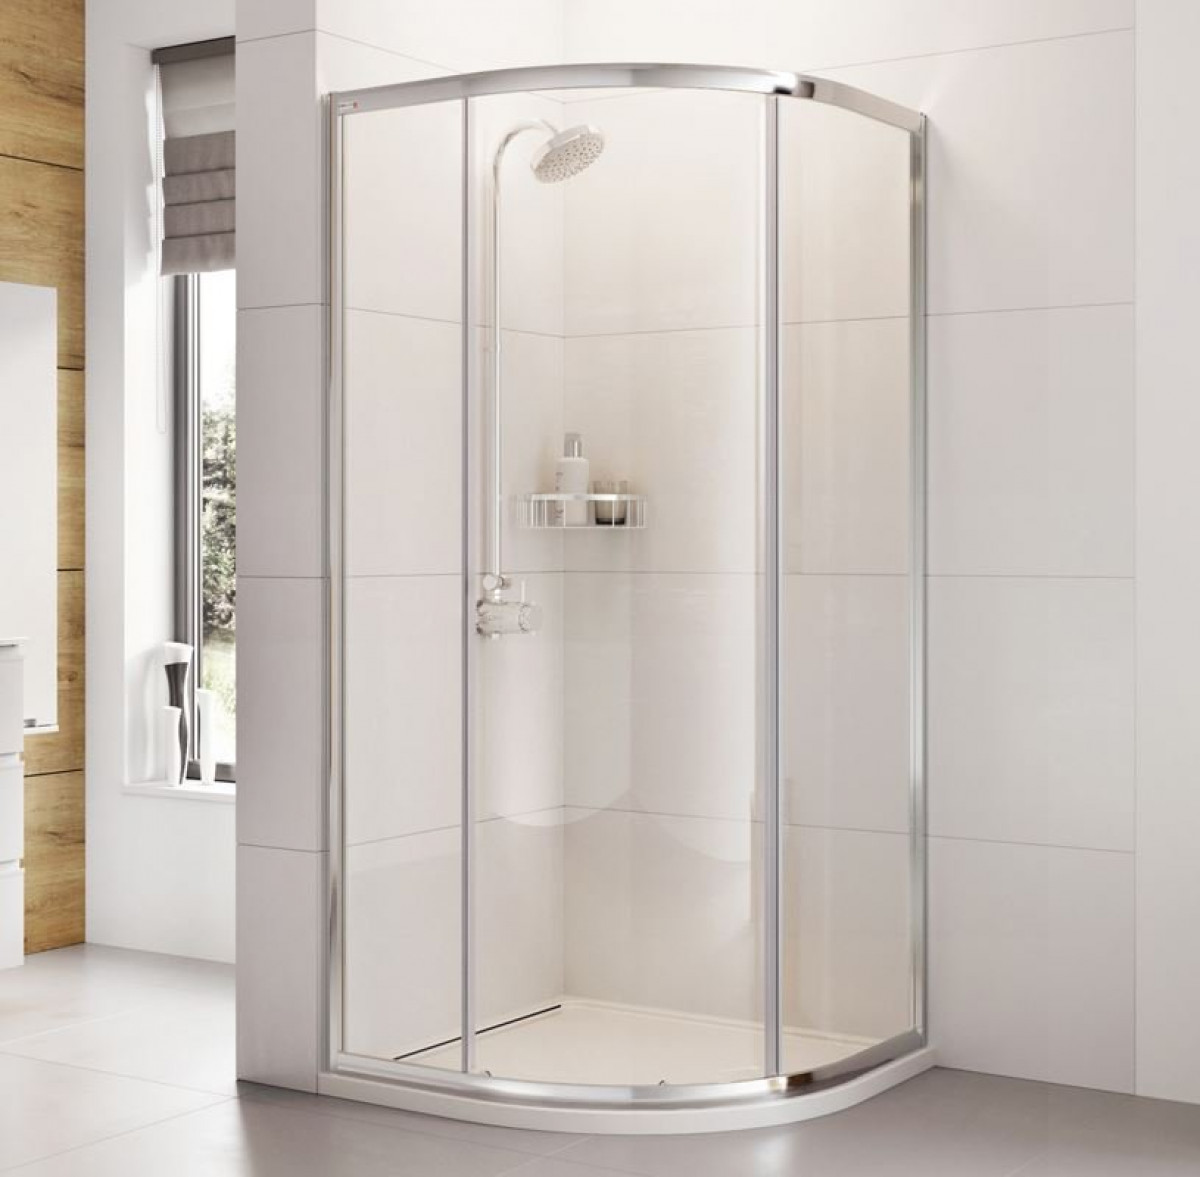 Roman Haven One Door 900mm Quadrant Shower Enclosure H3sq9cs